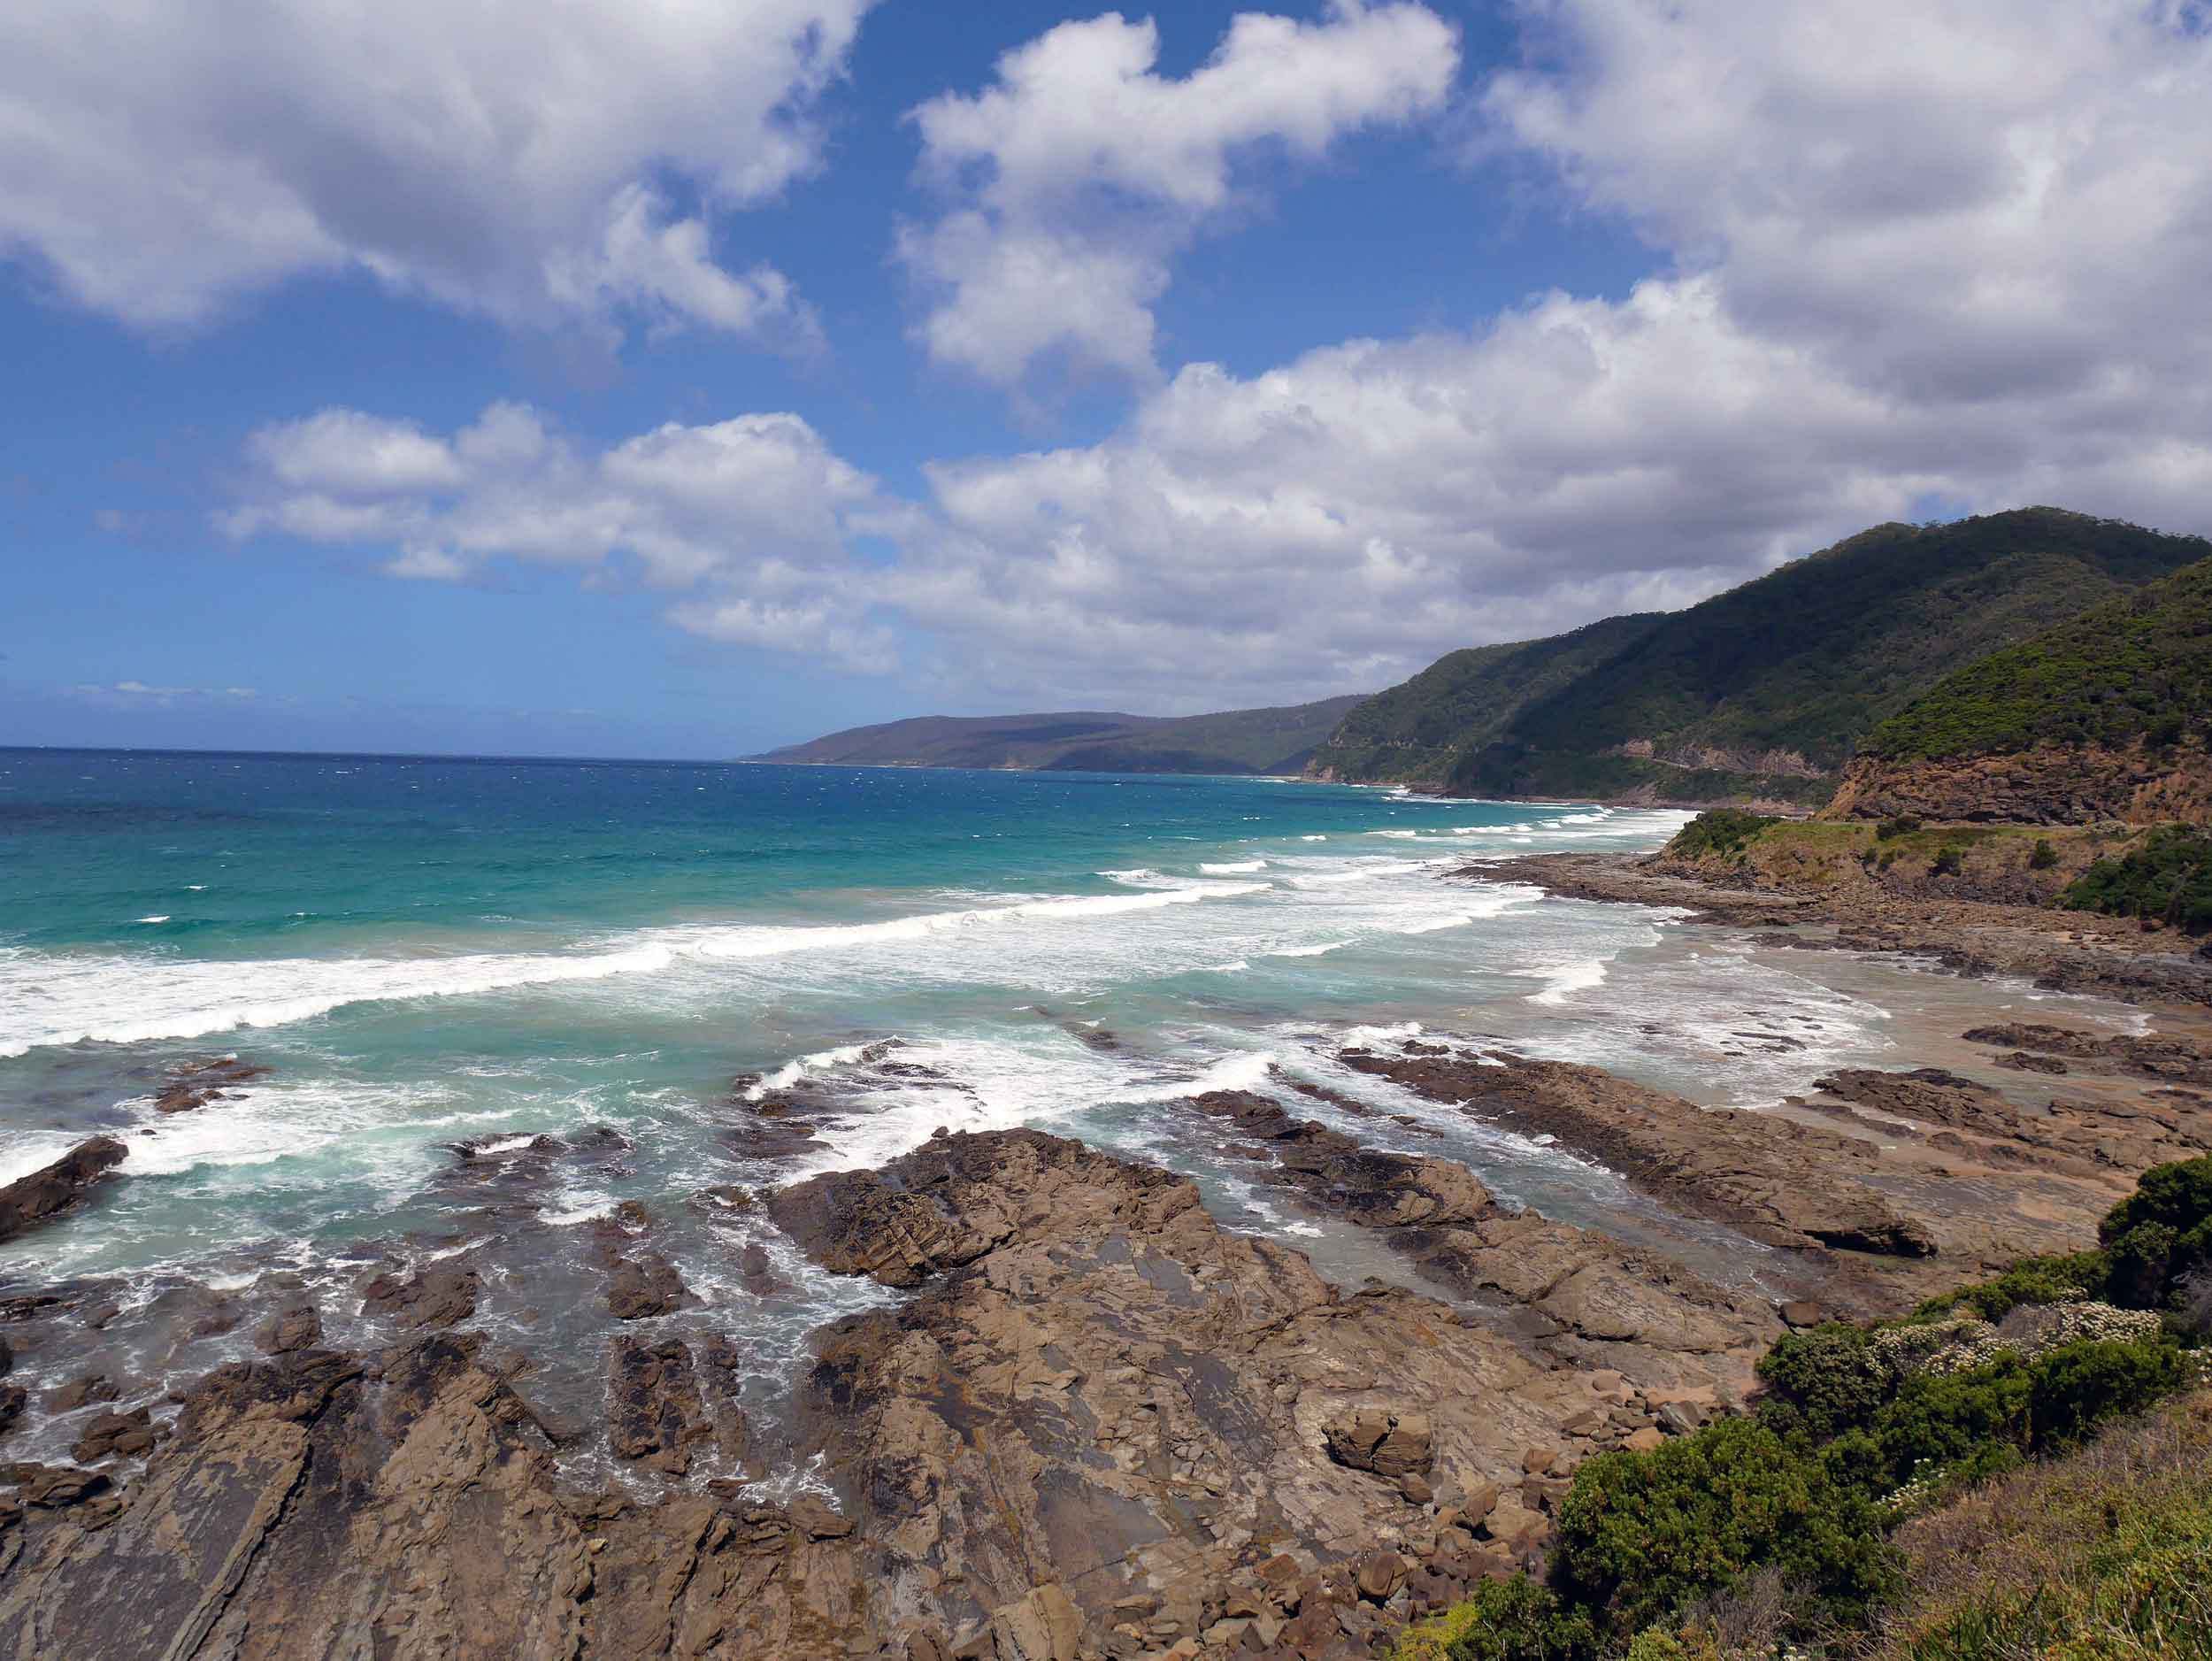 Another scenic vantage on the Great Ocean Road (Jan 24).